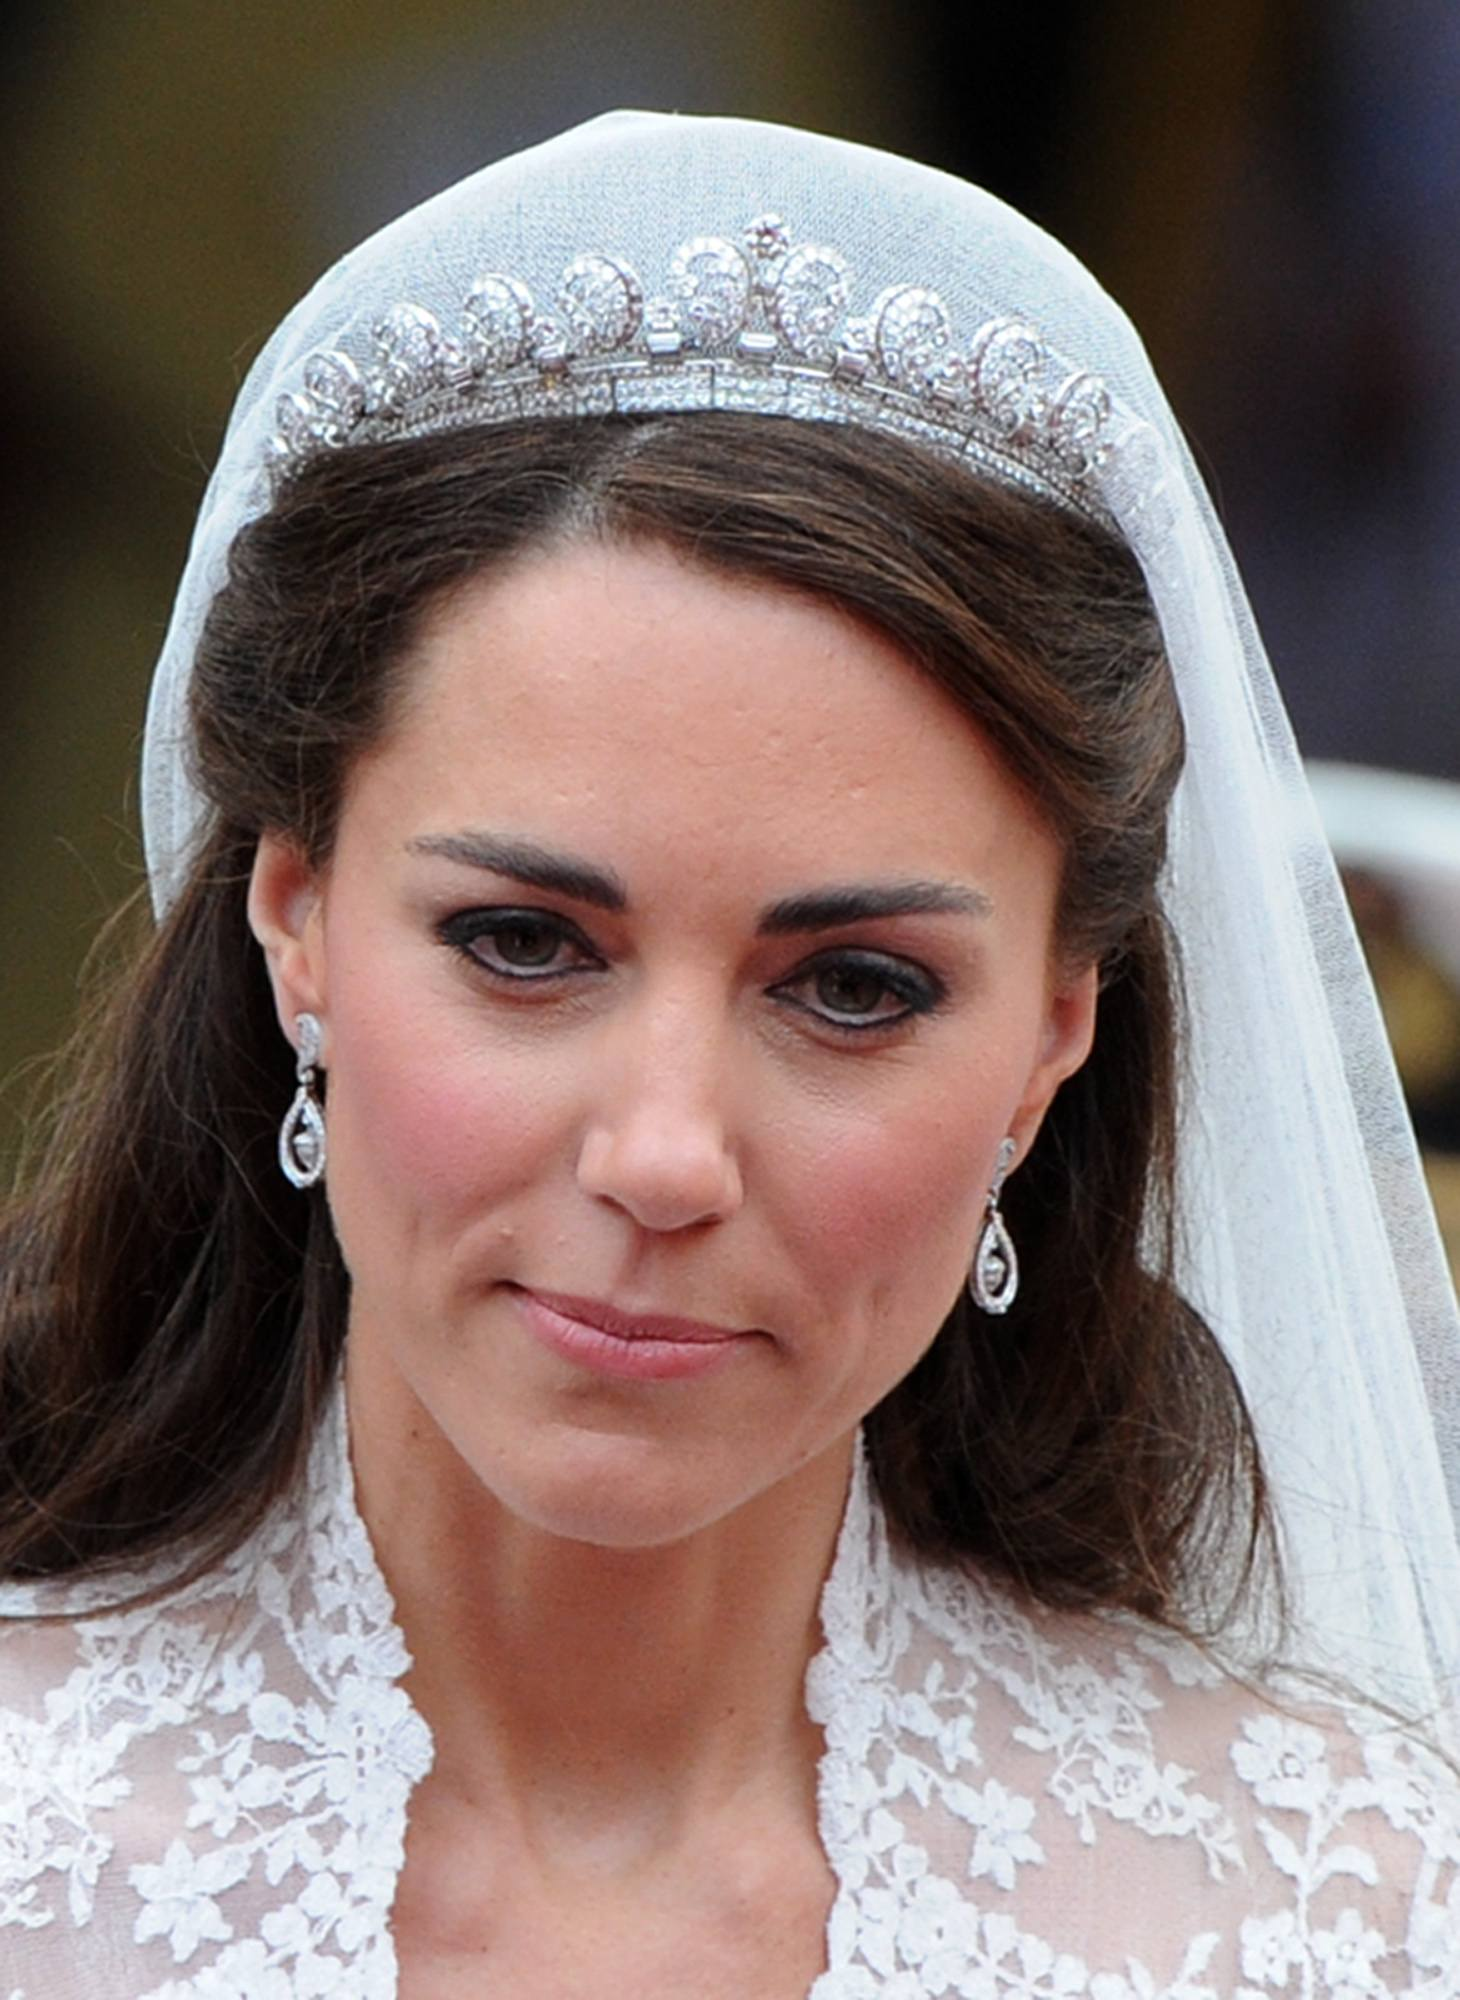 Kate Middleton, Duchess of Cambridge, wearing the Cartier 'halo' tiara on her wedding day